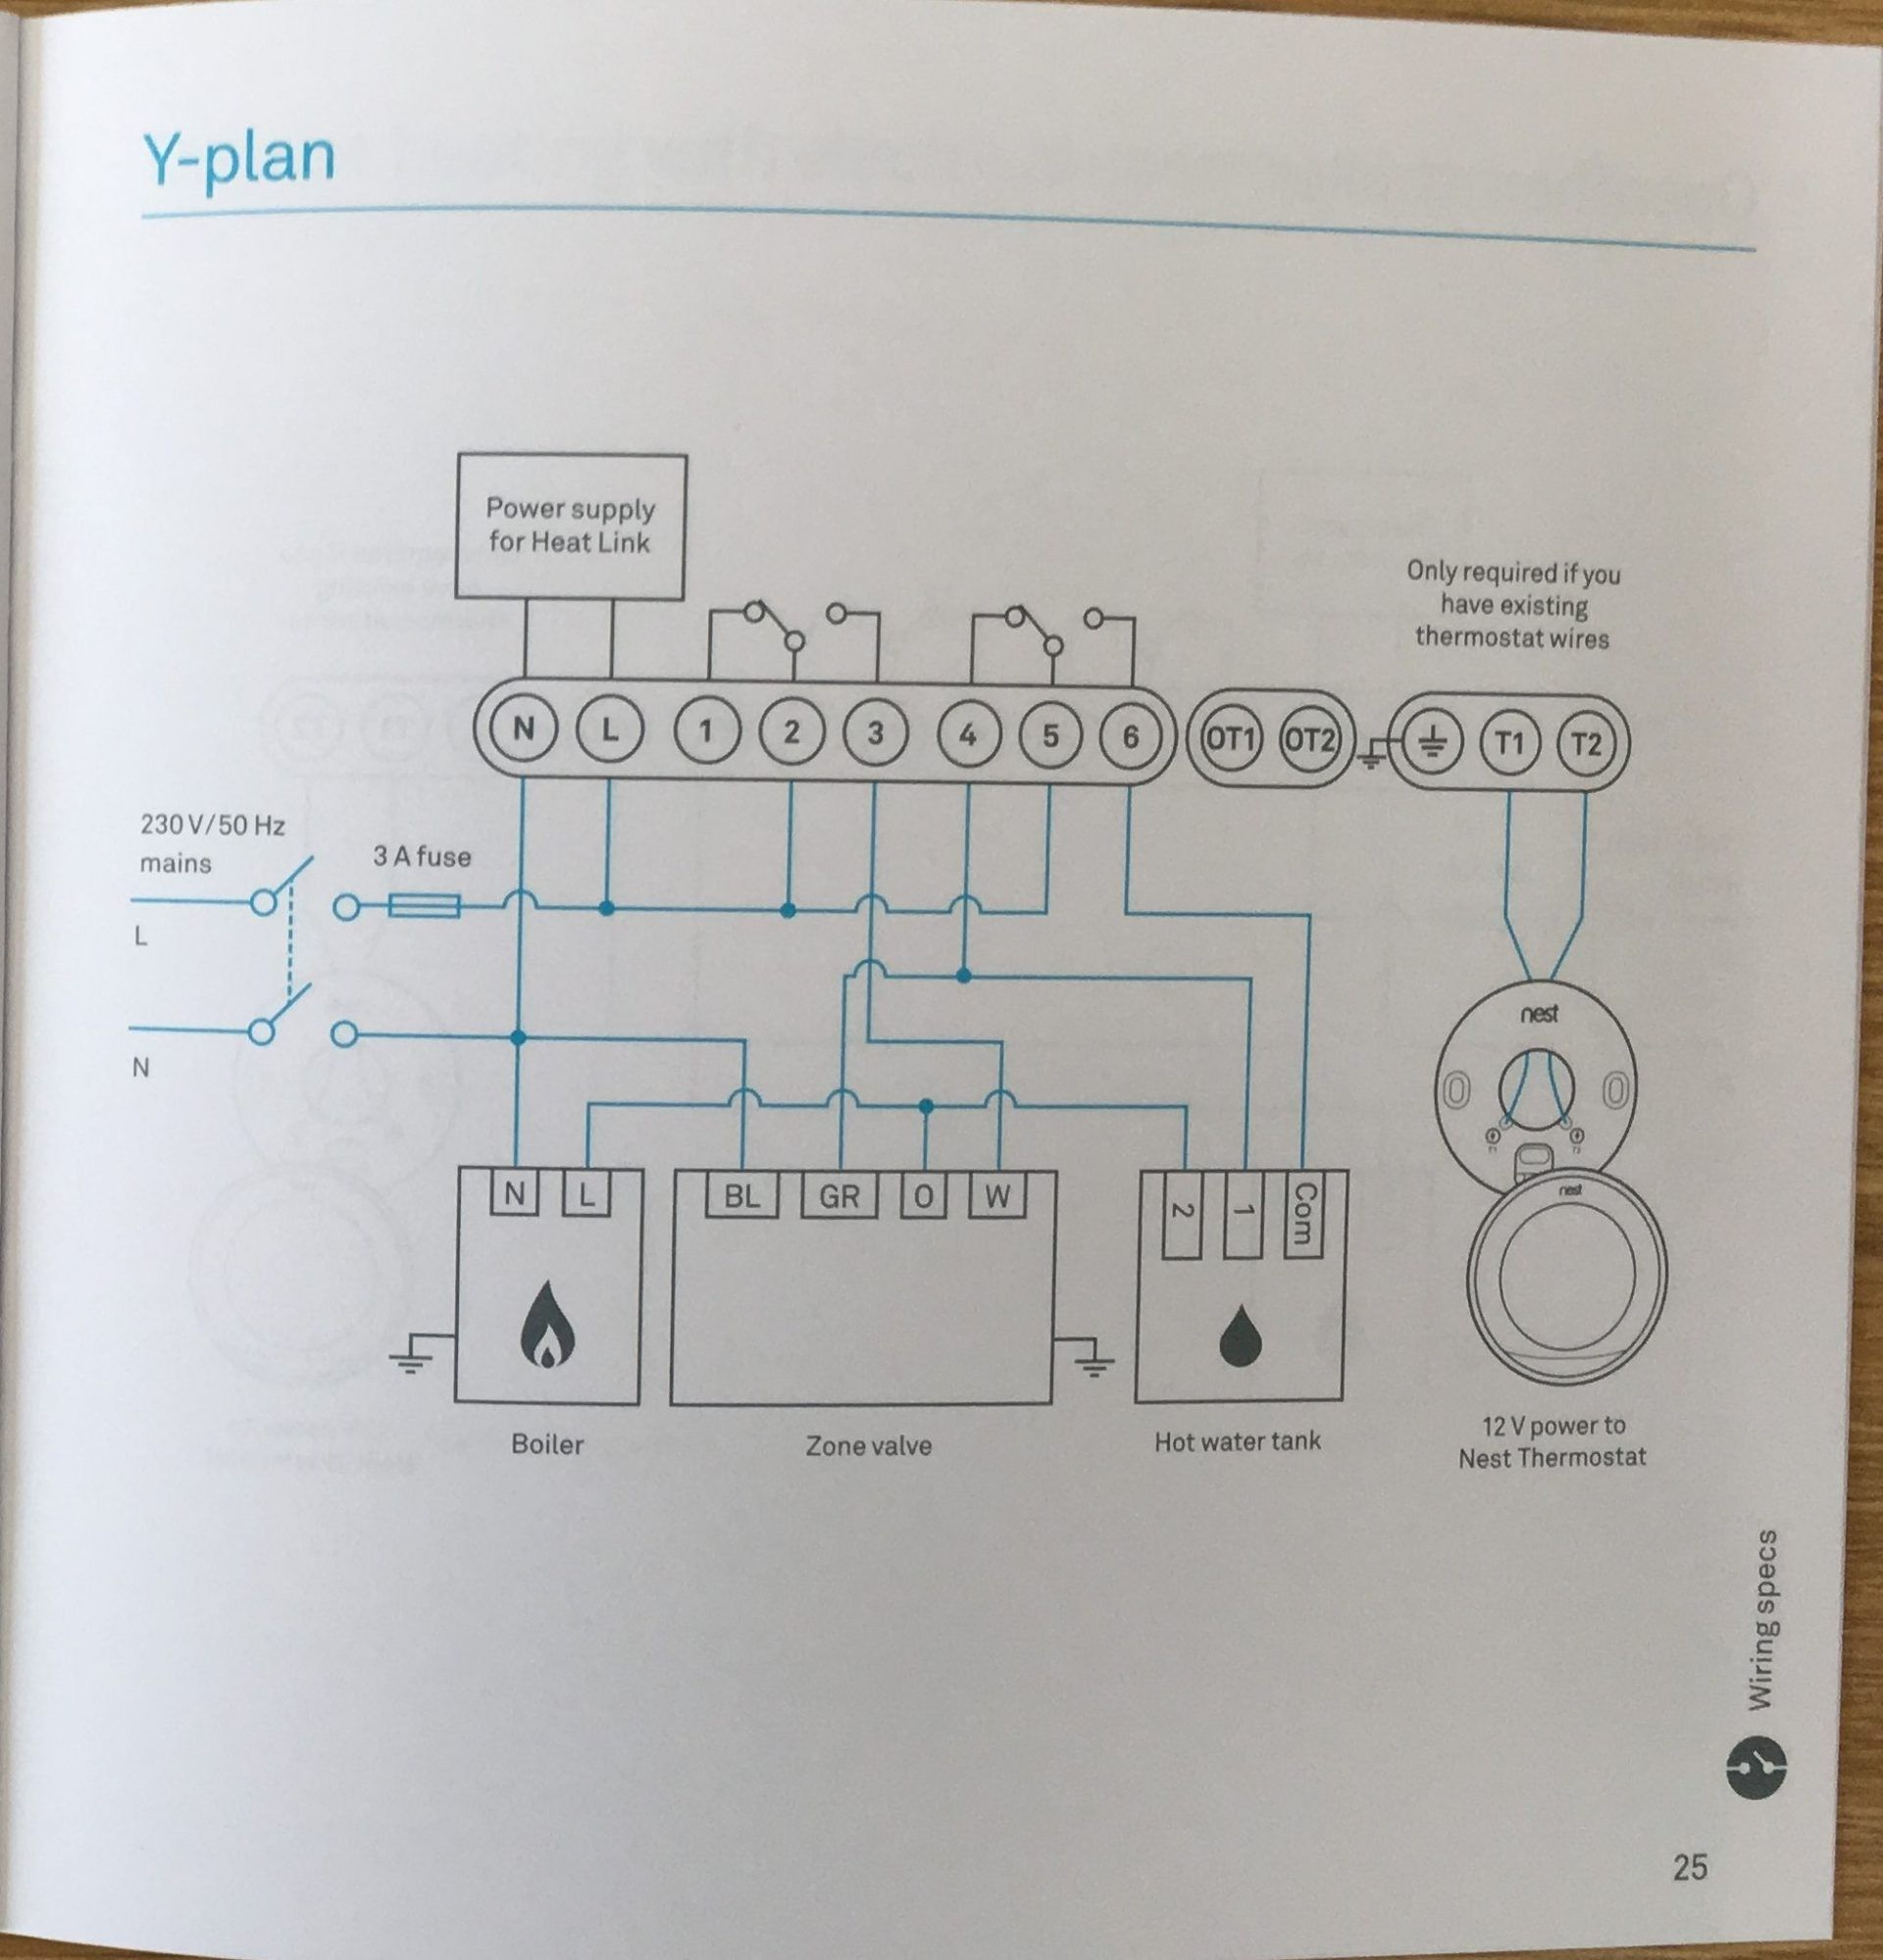 small resolution of luxury wiring diagram for a y plan heating system diagrams digramssample diagramimages wiringdiagramsample